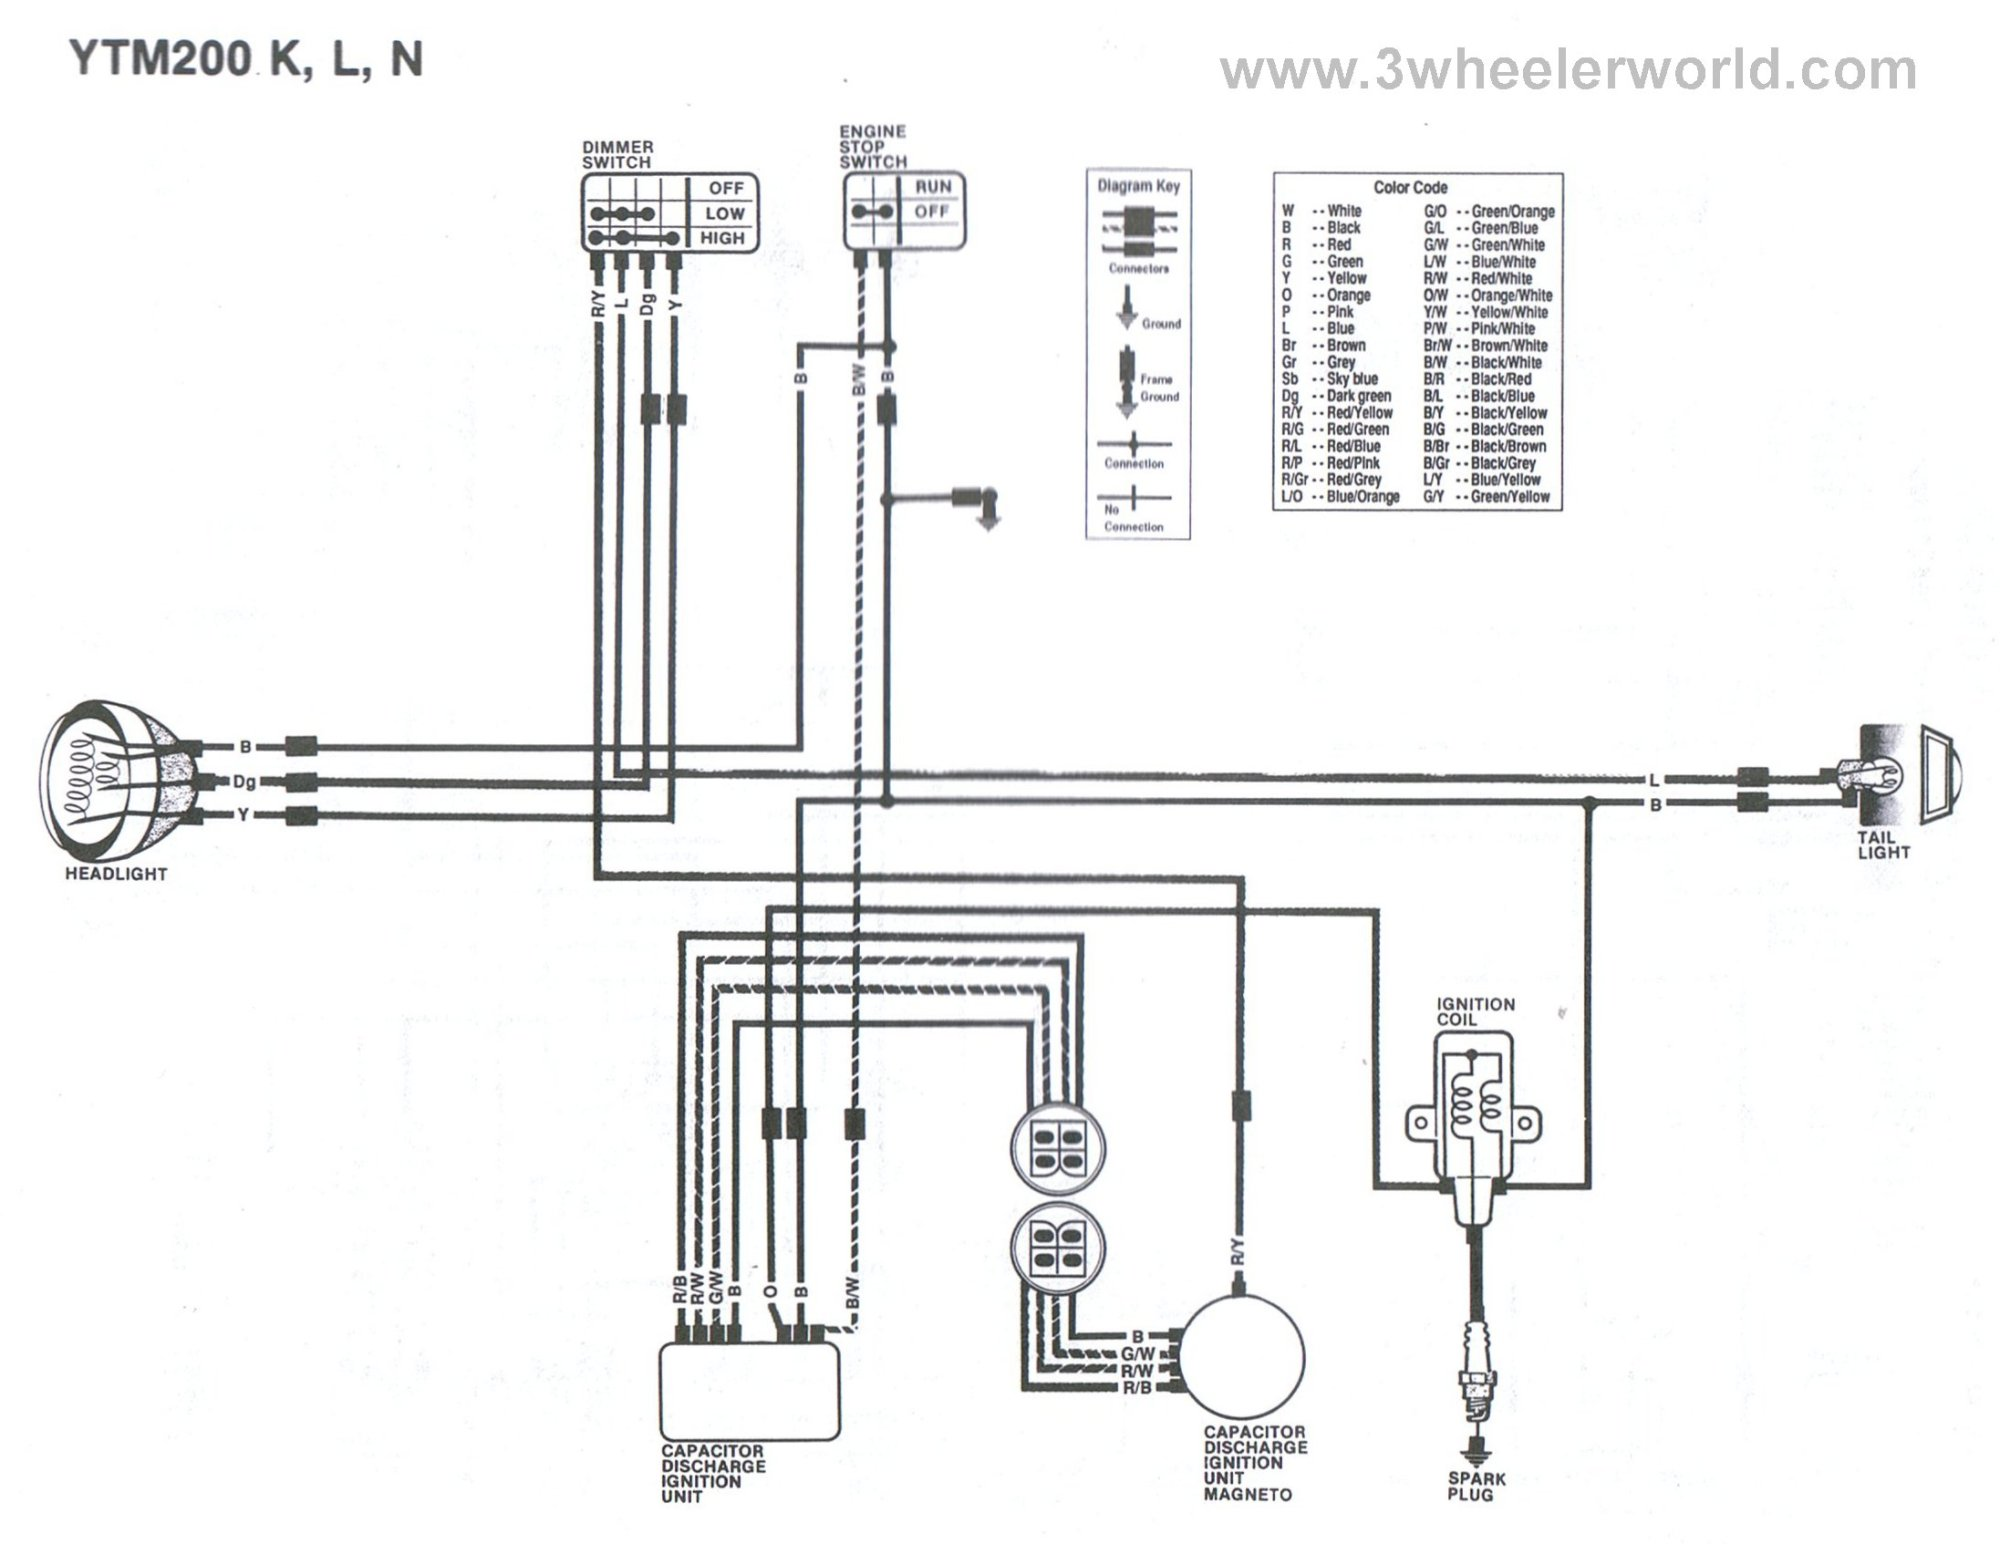 hight resolution of 3 wheeler world tech help yamaha wiring diagramsyamaha wiring diagrams